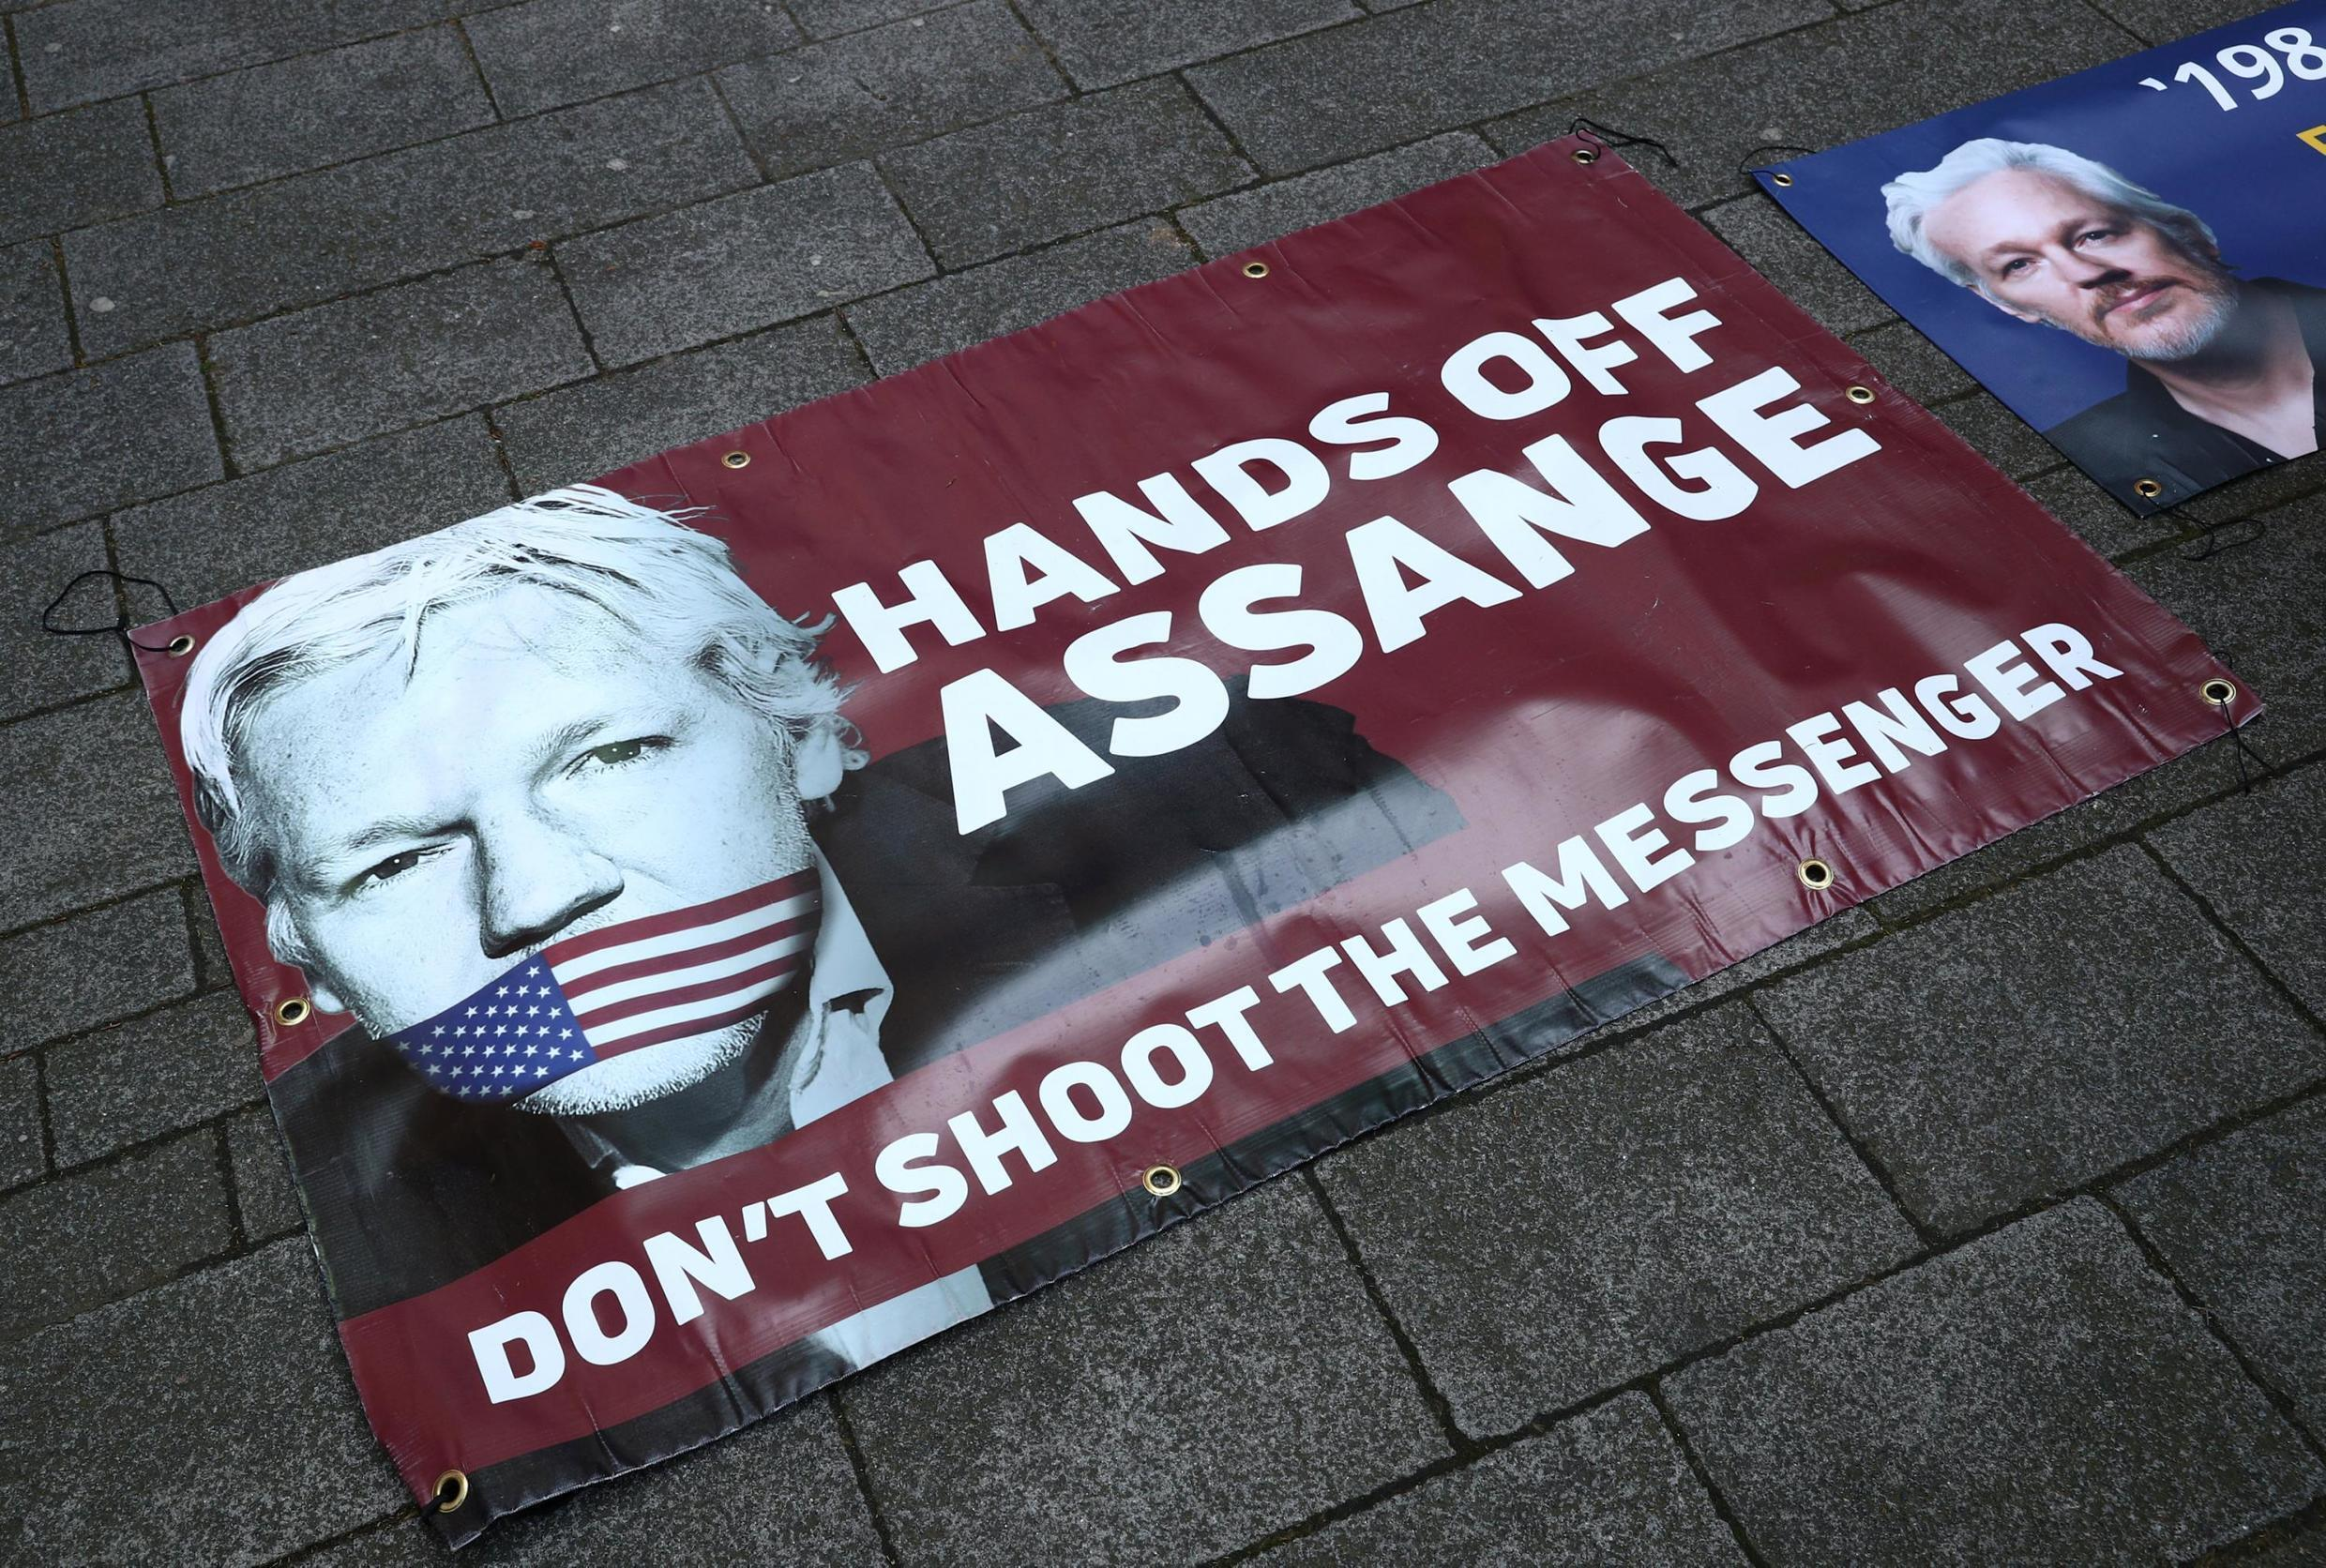 A poster of support for Julian Assange outside the court in Westminster, London, 11 April, 2019.